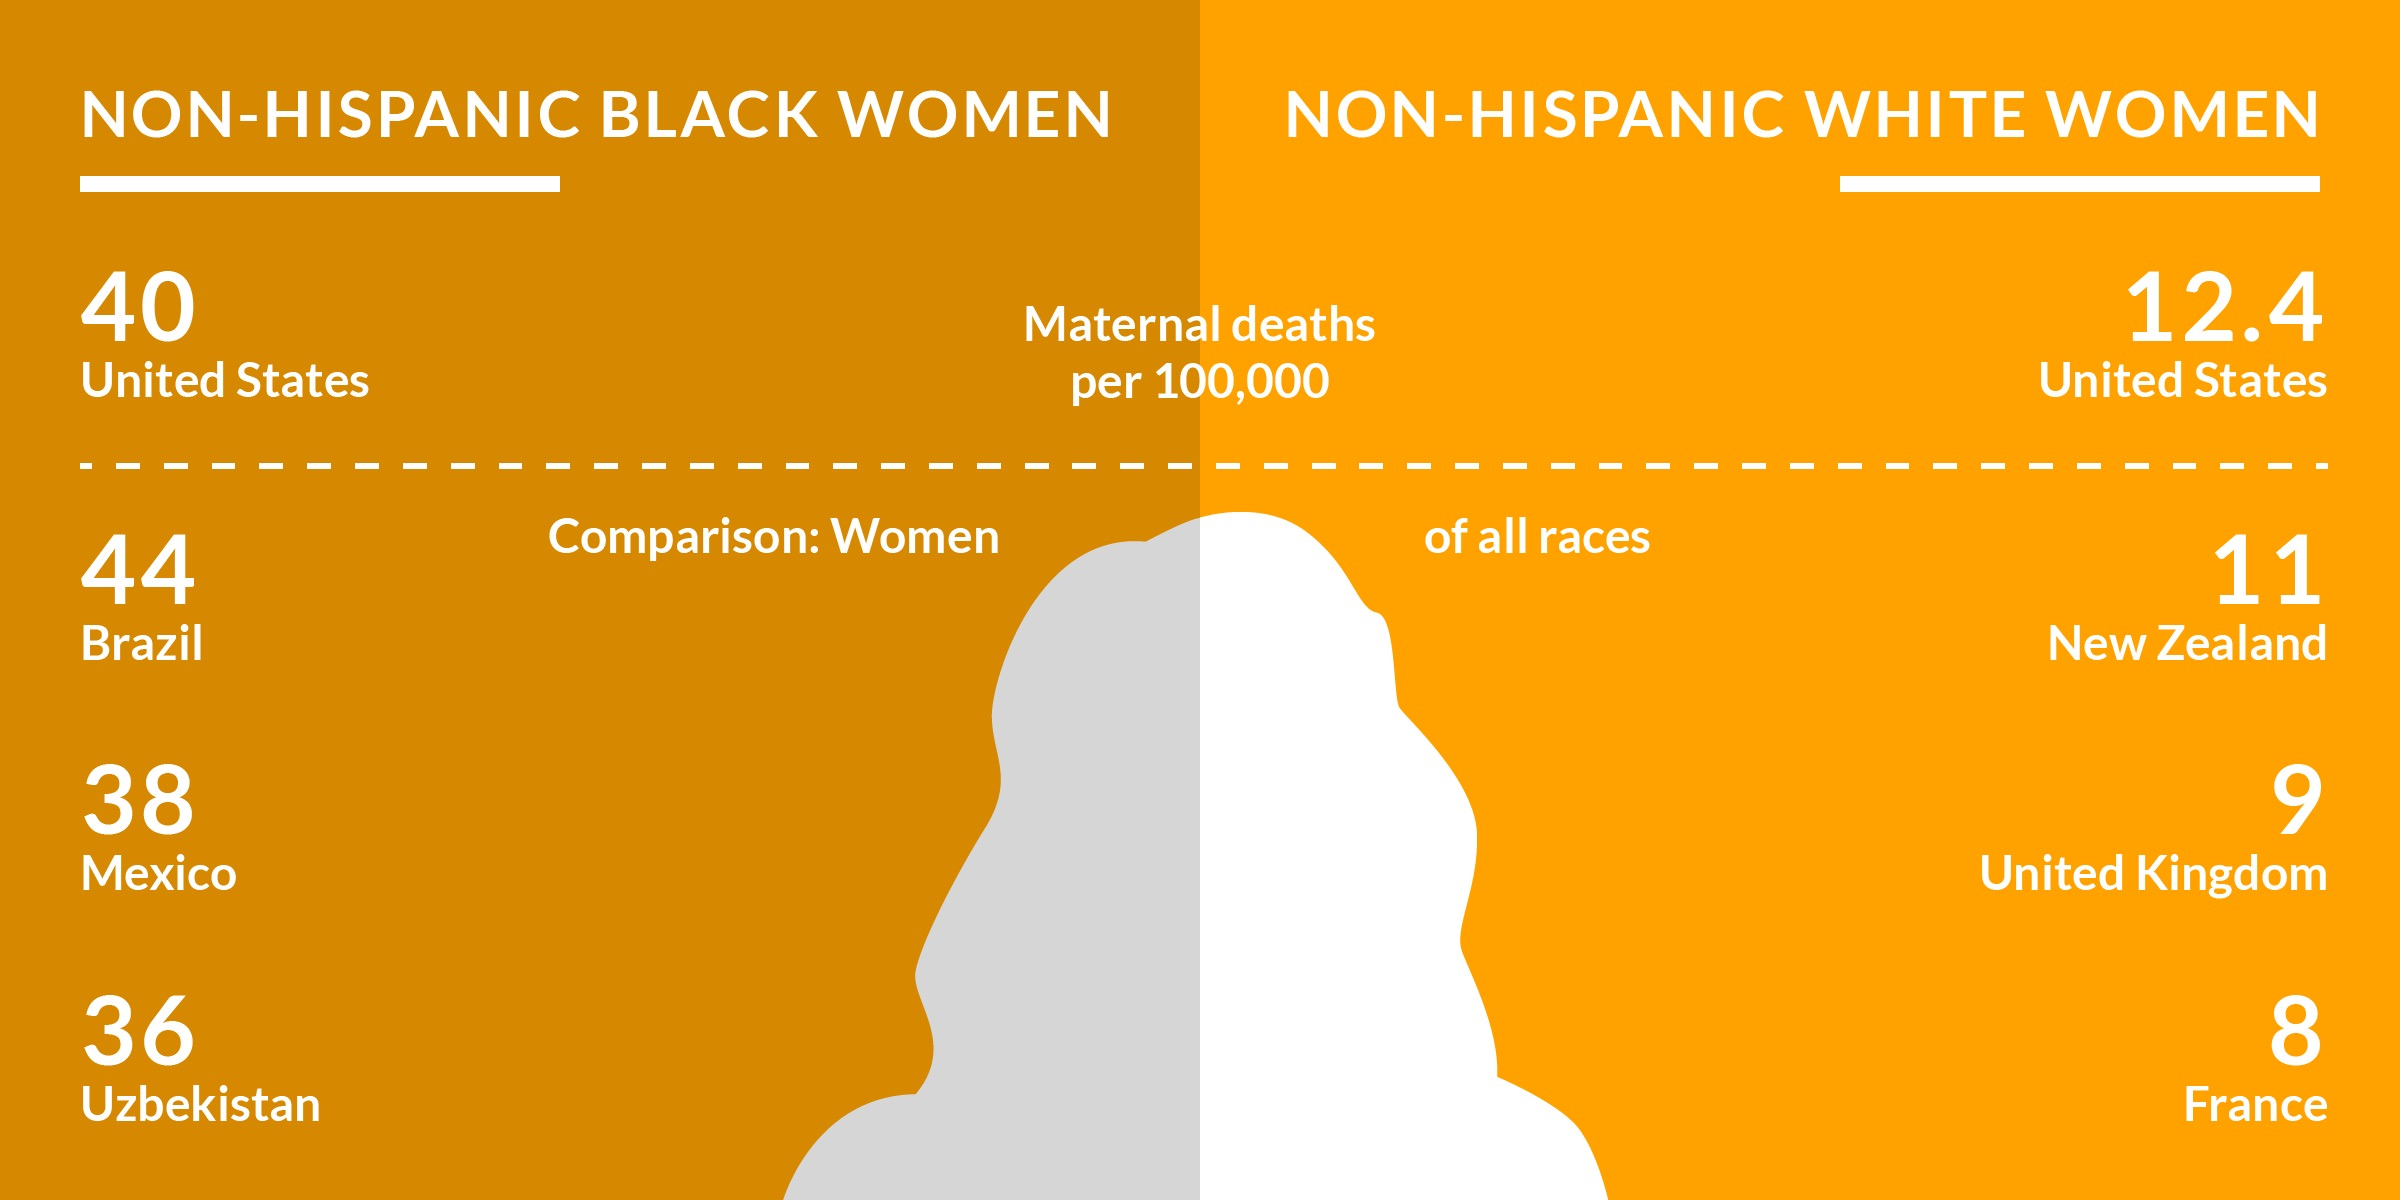 """A visual labeled """"non-Hispanic black women"""" on the left and """"non-Hispanic white women"""" on the right. A series of stats are given for maternal deaths per 100,000 women. For every 100,000 non-Hispanic black women in the United States, there are 40 maternal deaths compared to 12.4 maternal deaths for non-Hispanic white women. Aggregate numbers out of 100,000 for women of all races are given in the bottom half of the graphic. 44 for Brazil, 38 for Mexico, 36 for Uzbekistan, 11 for New Zealand, 9 for the UK, and 8 for France."""